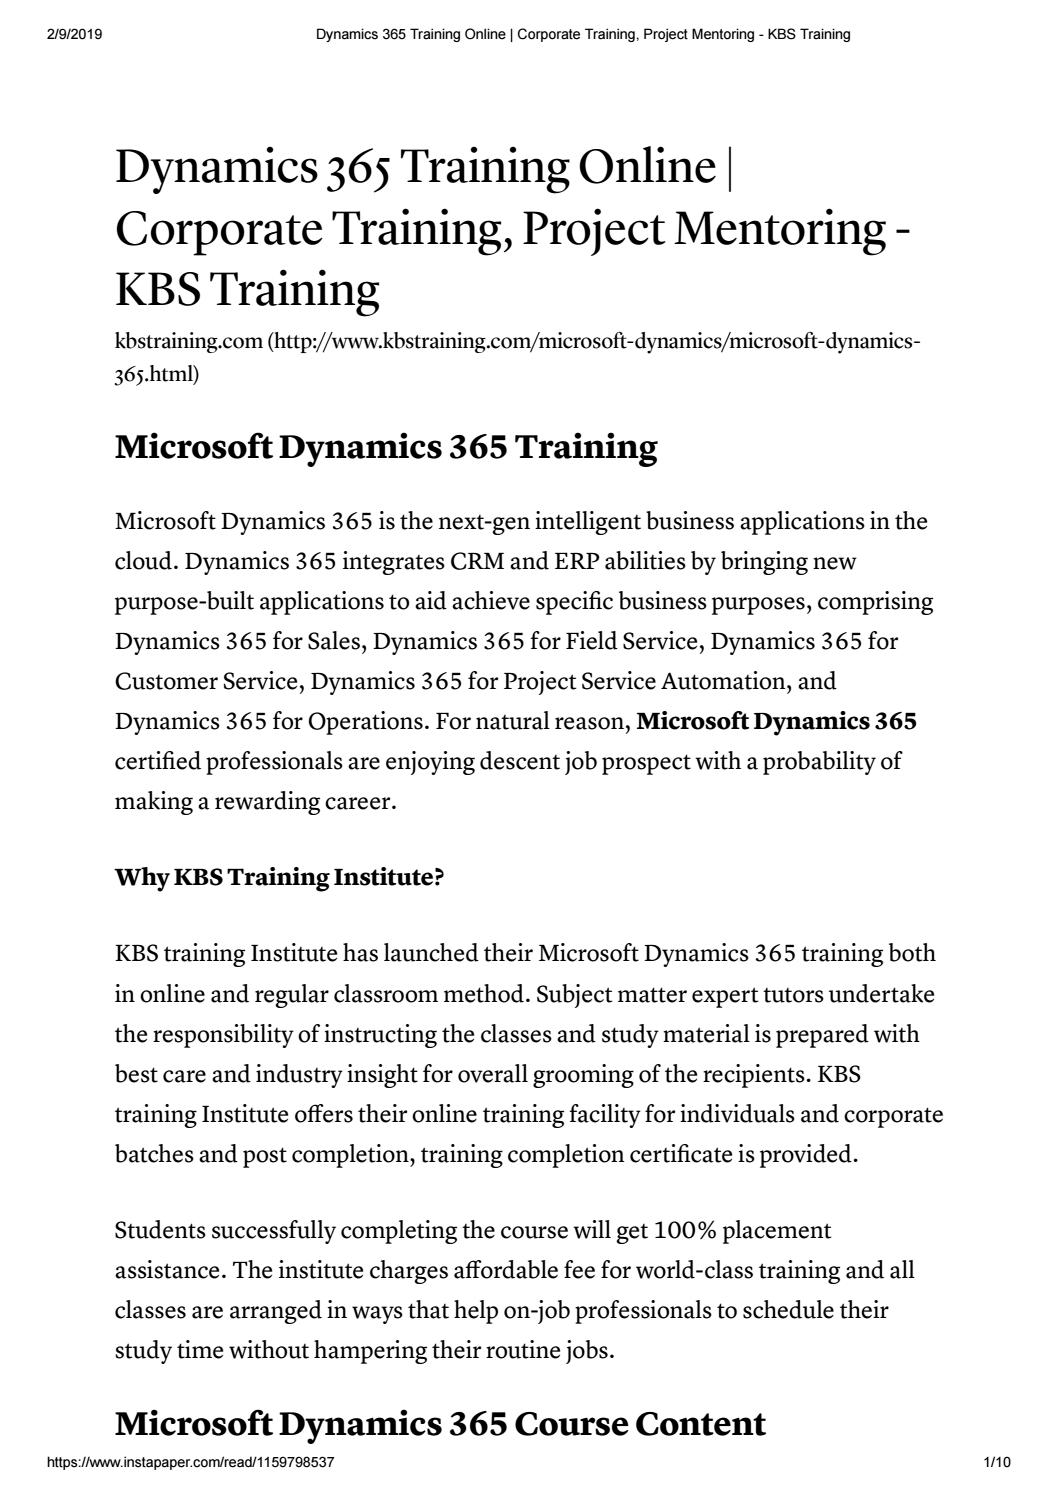 Dynamics 365 | Microsoft Dynamics 365 Training Online With